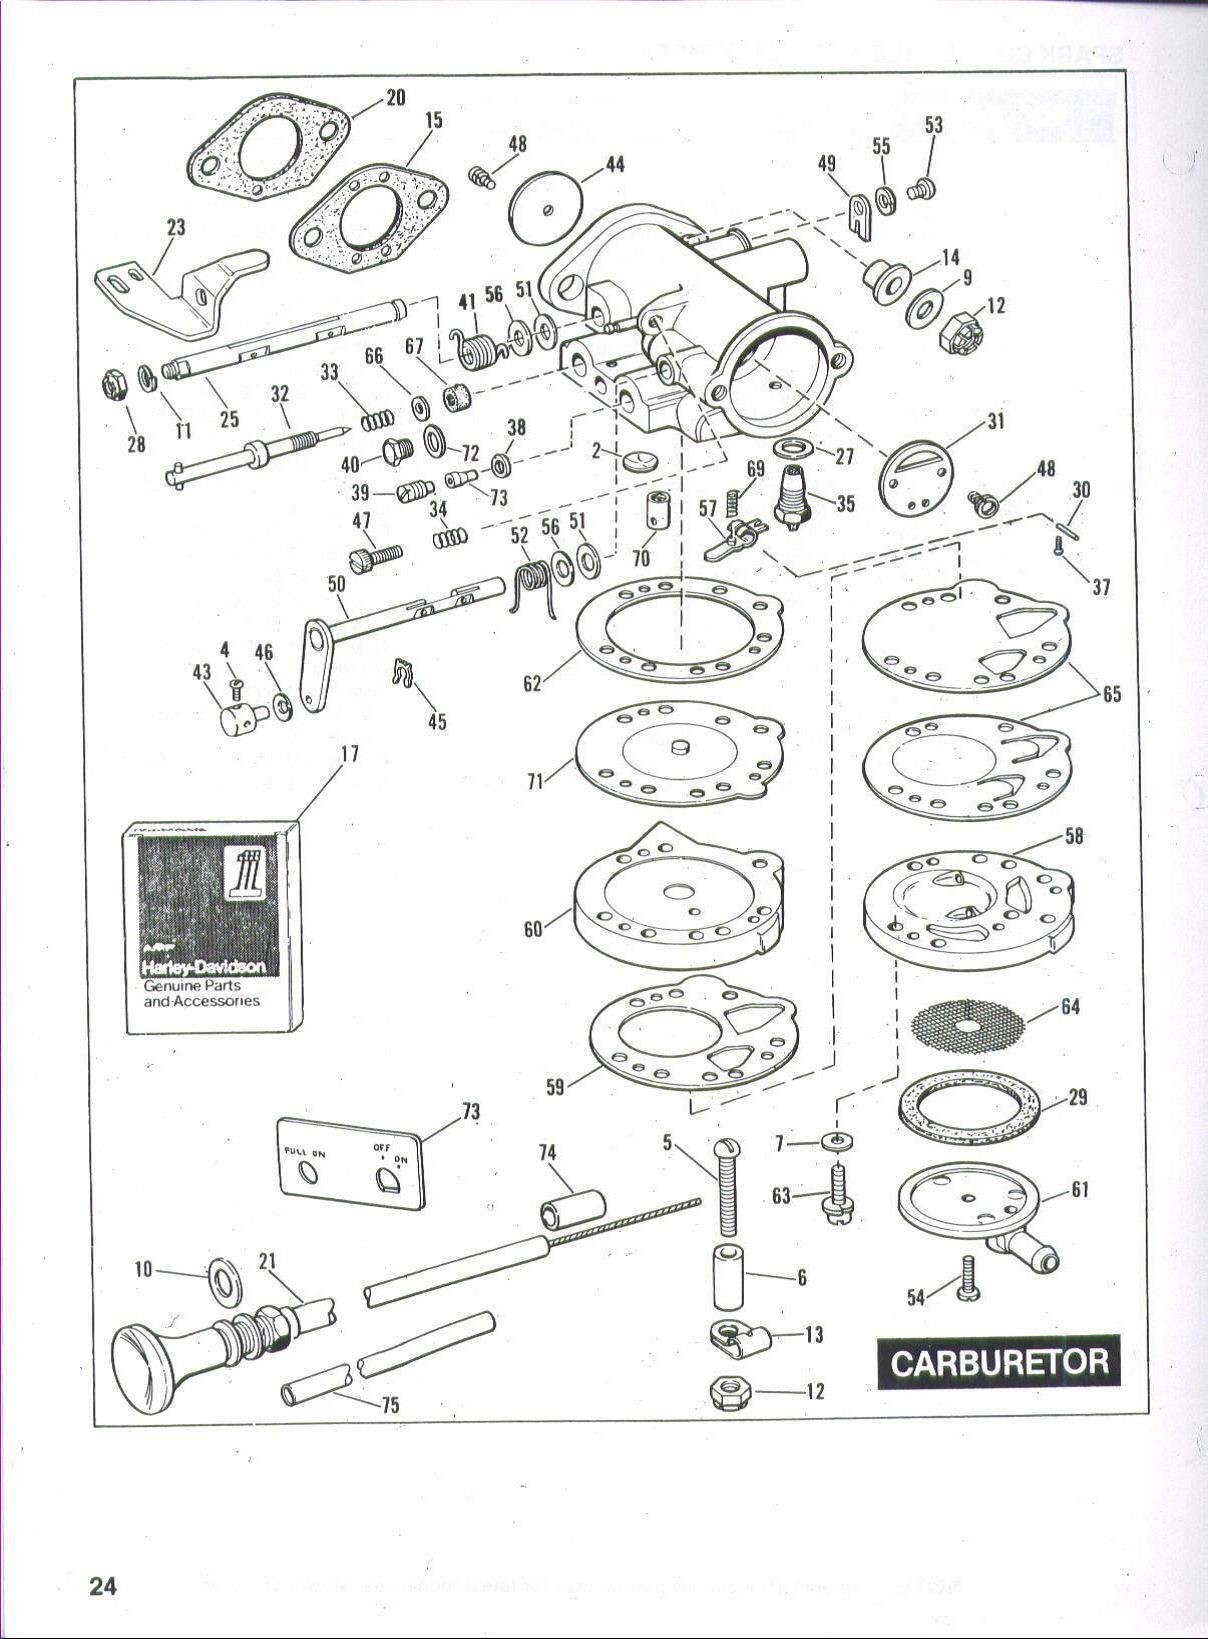 Diagram Of Club Car Parts Car Diagram Inspiringlf Cart ... on